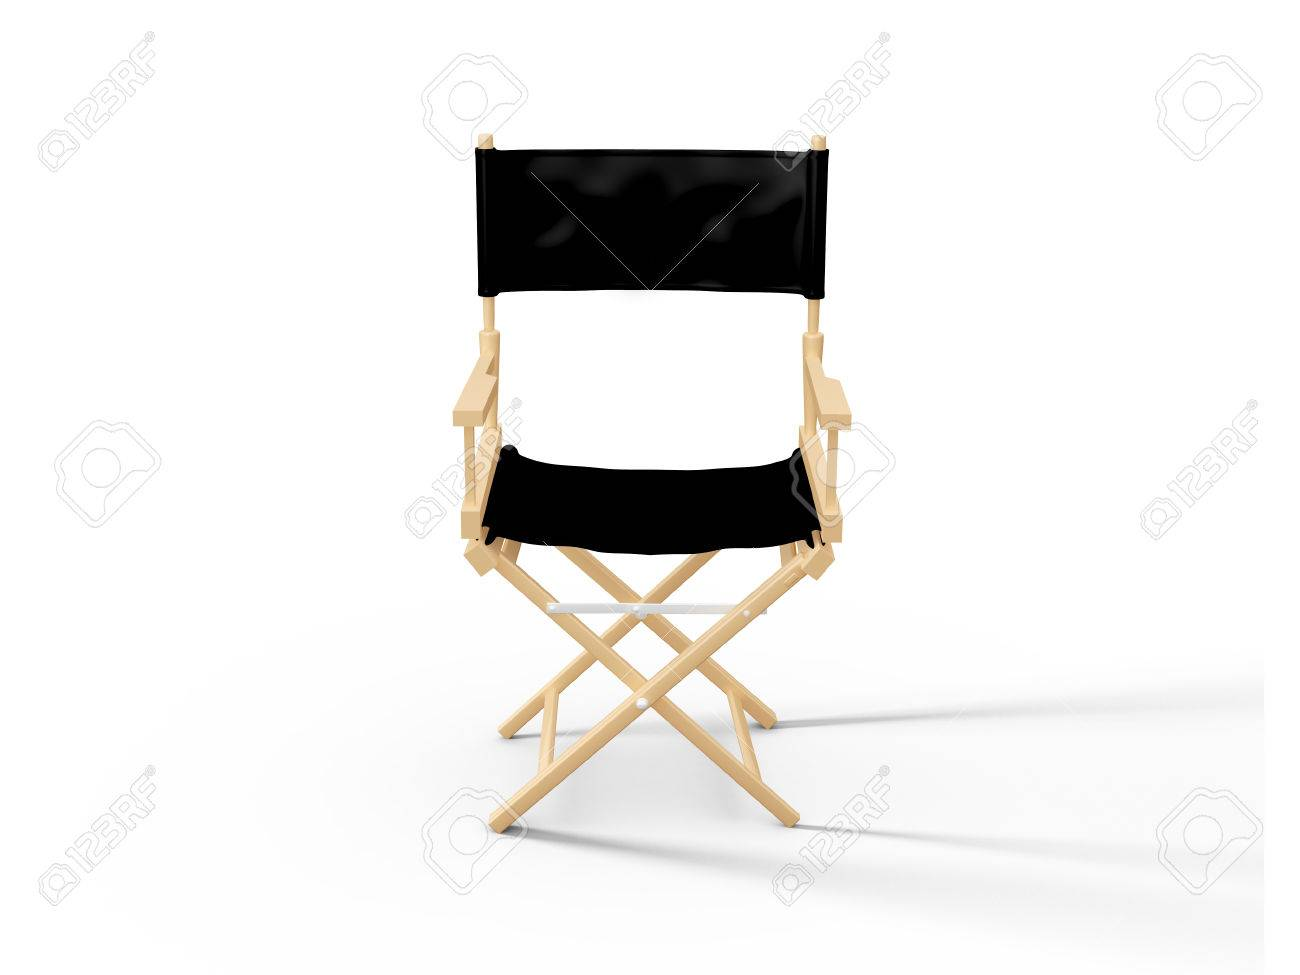 directors chair white wicker peacock front view of in film industry isolated on background stock photo